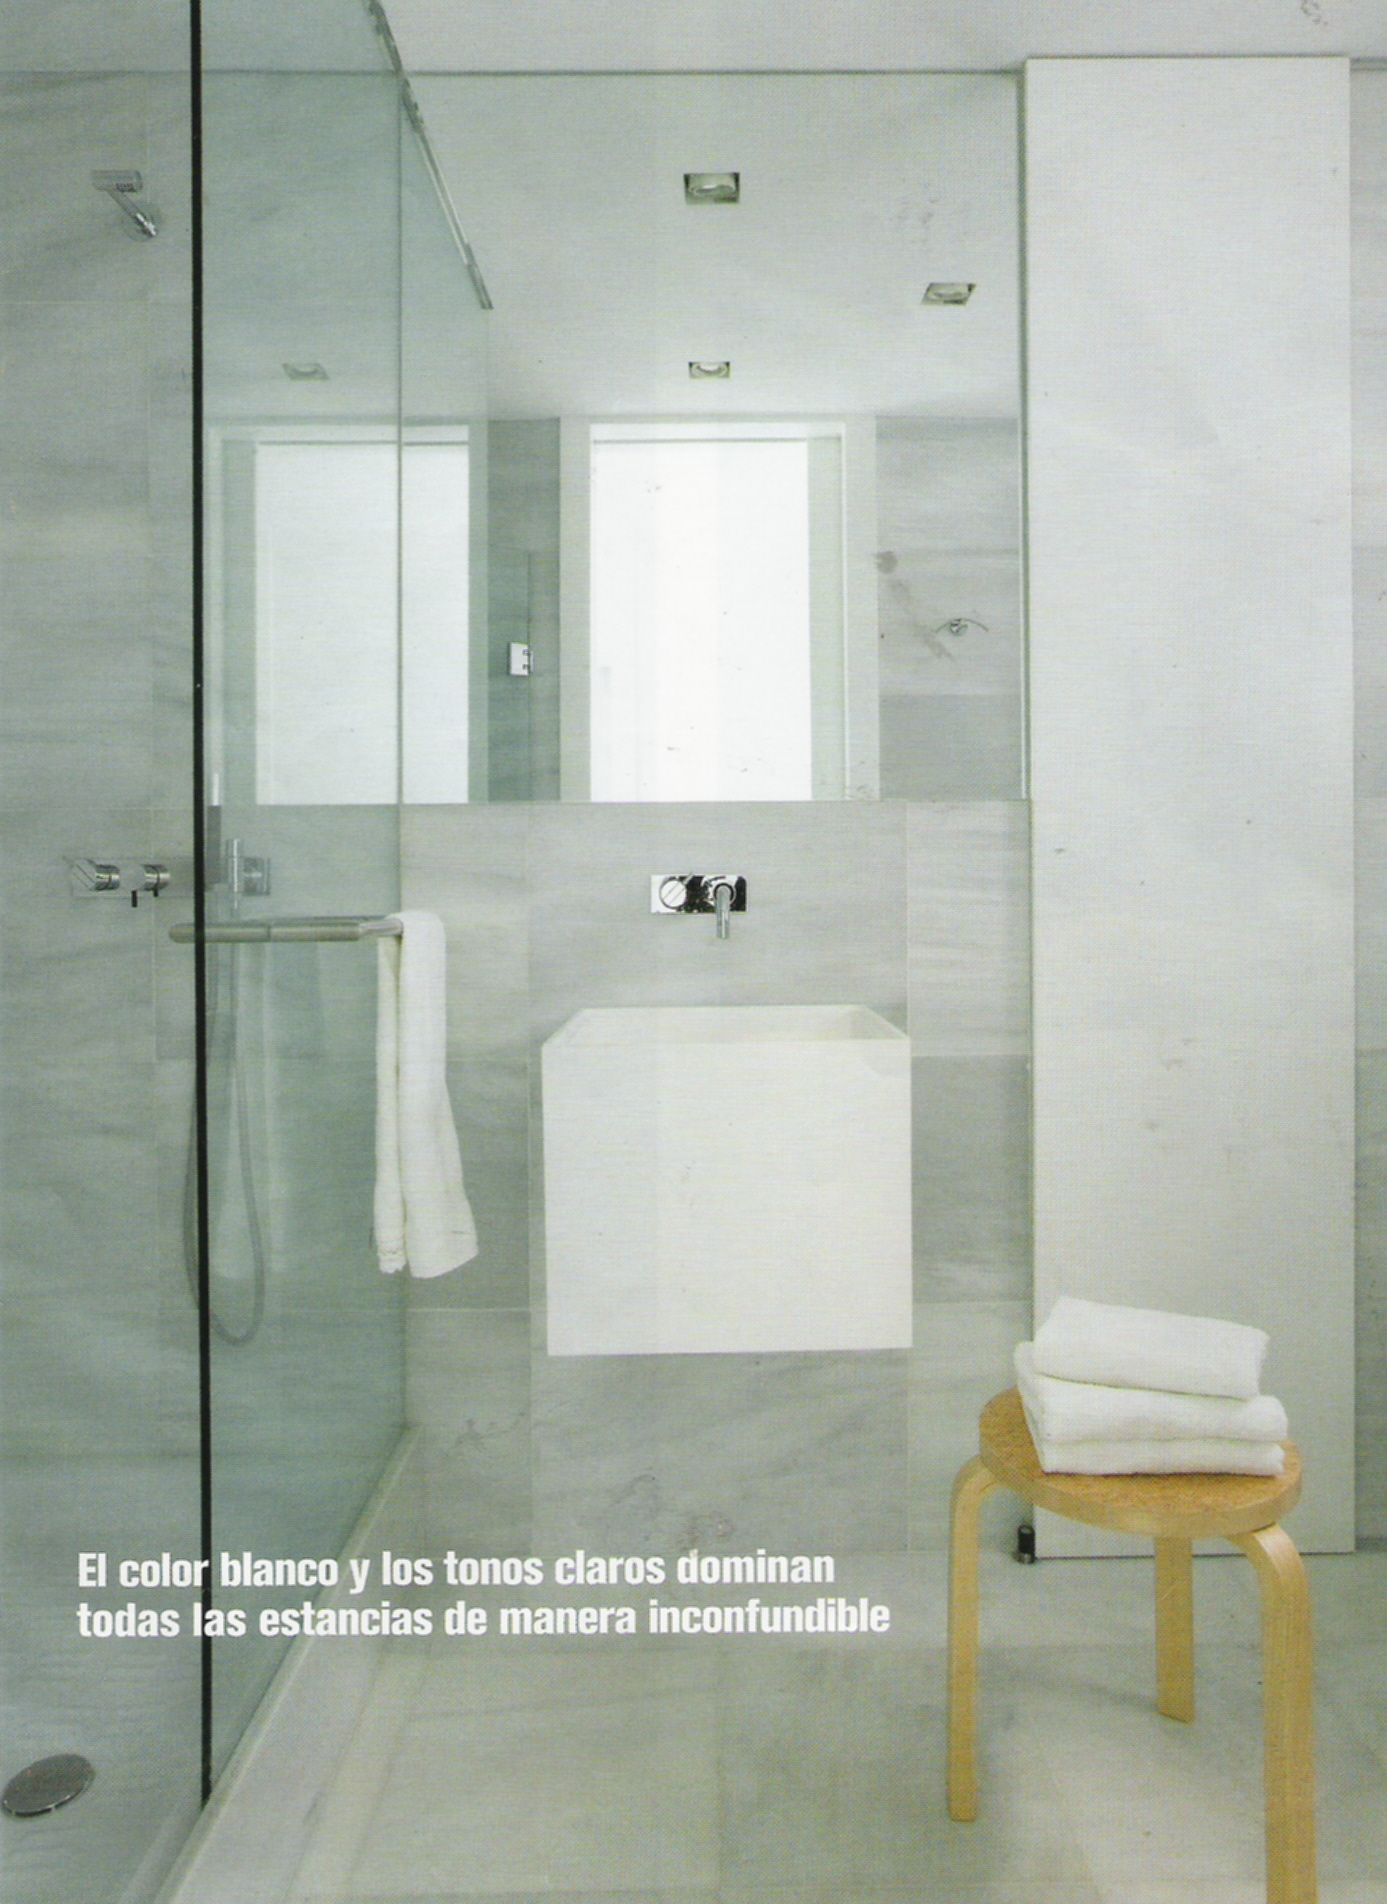 Modern Bathroom With Glass Partitions Bathrooms Pinterest - Bathroom glass partition designs